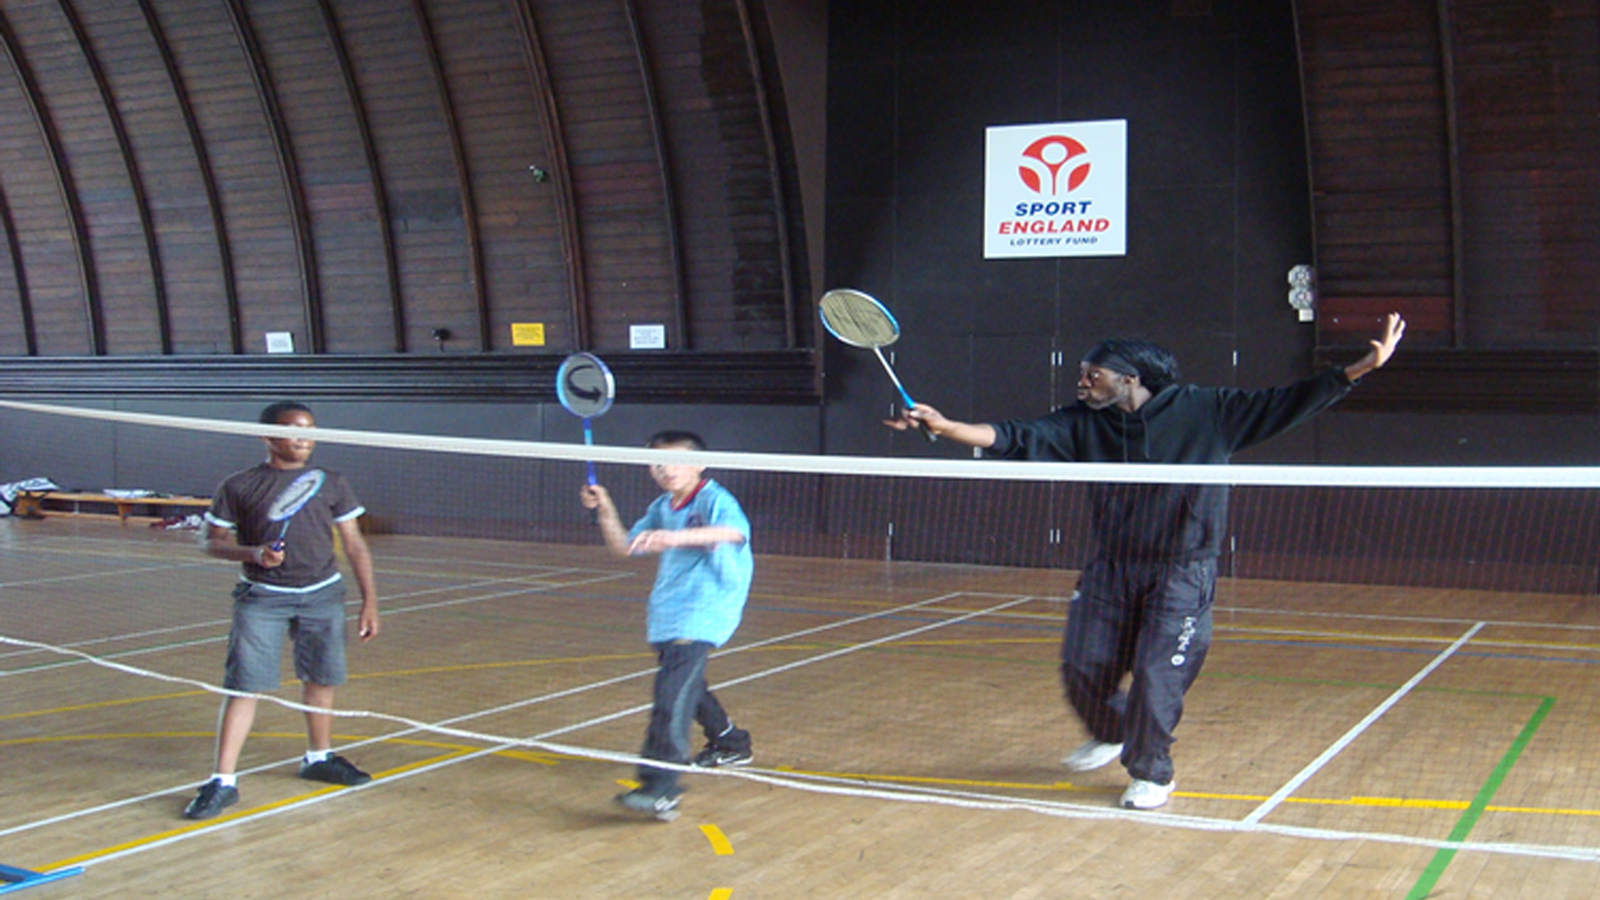 Badminton - Badminton is a fun, social way to keep active that boosts both your physical and mental health. So, pick up a racket and get involved today.